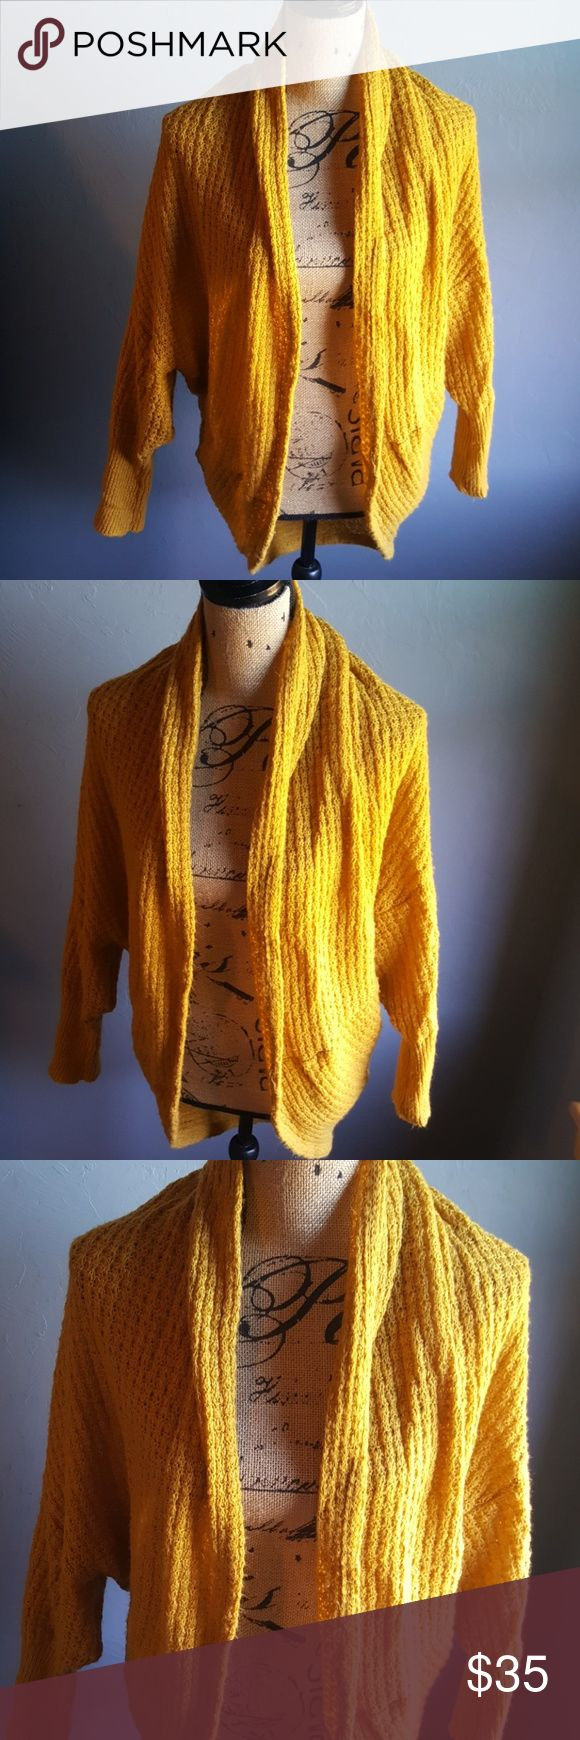 Miss Sixty Open Batwing Cardigan Sweater Very cute In great condition Lightweight Gold color Miss Sixty Sweaters Cardigans